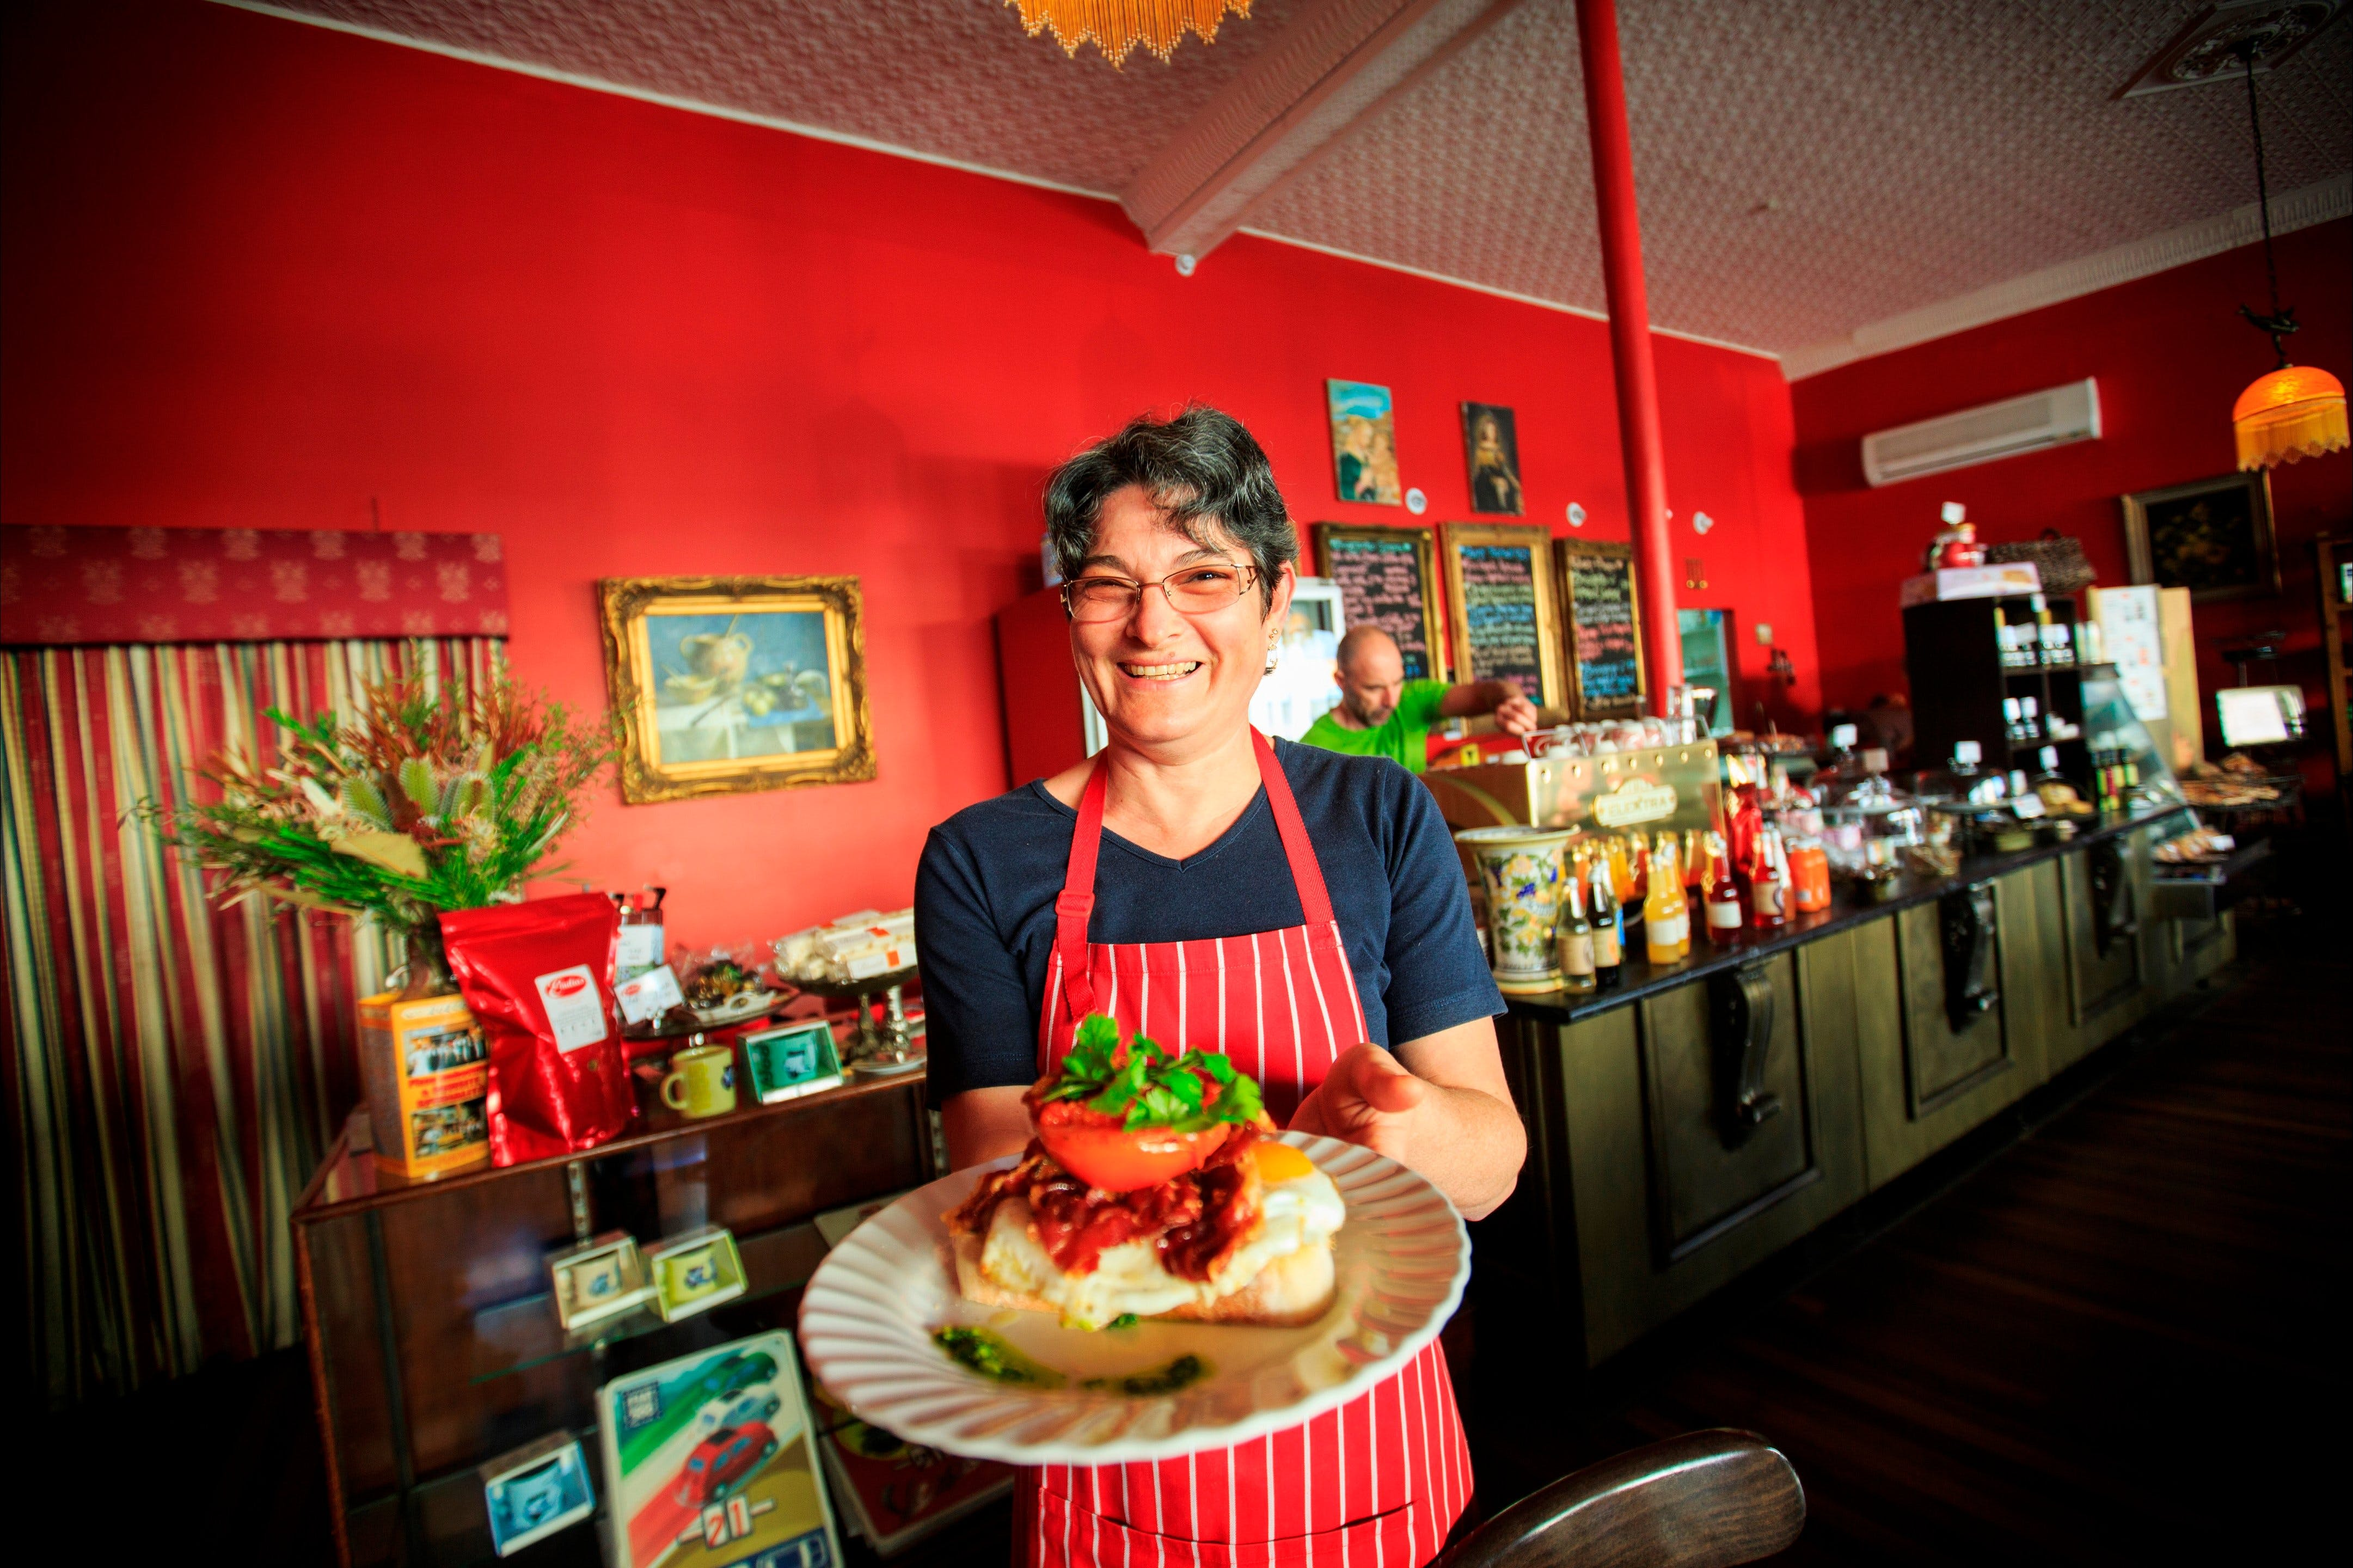 Gympie Region Food Trail - New South Wales Tourism